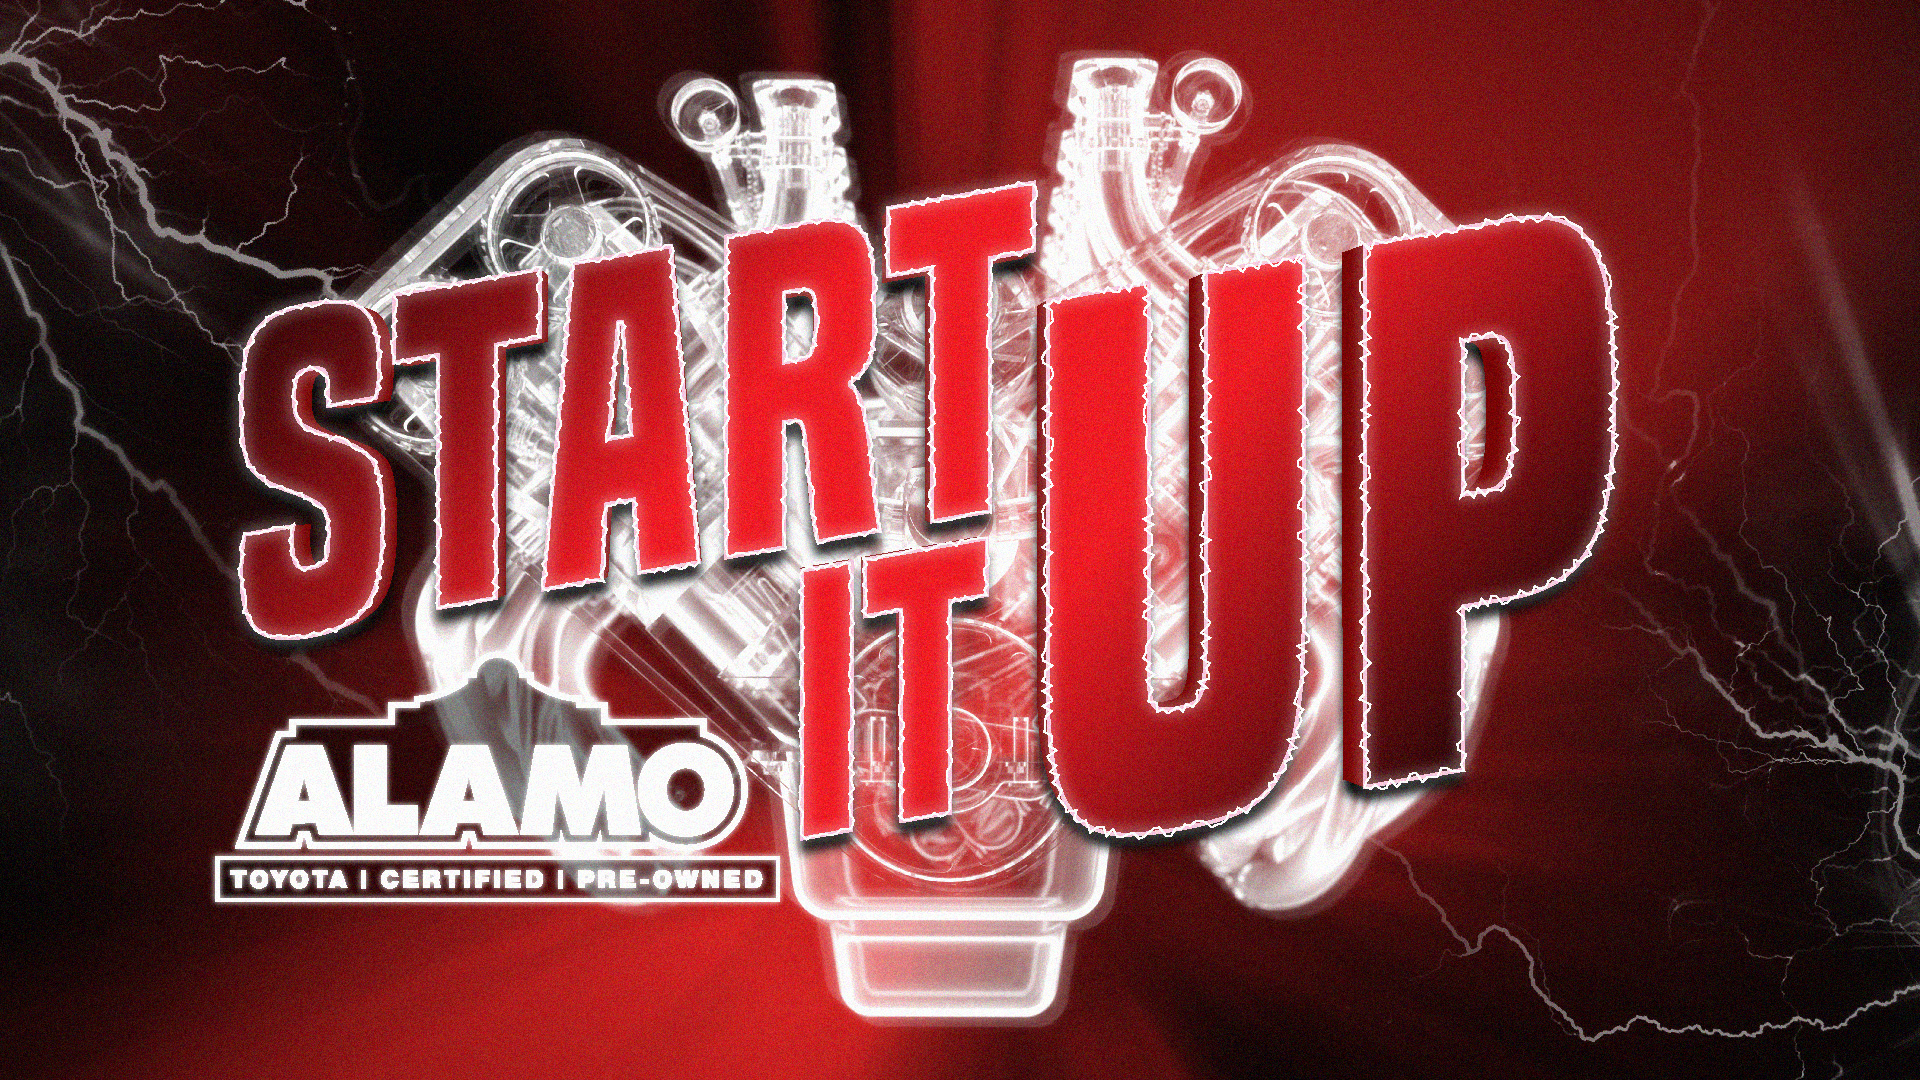 Alamo Toyota Start It Up by tlsivart